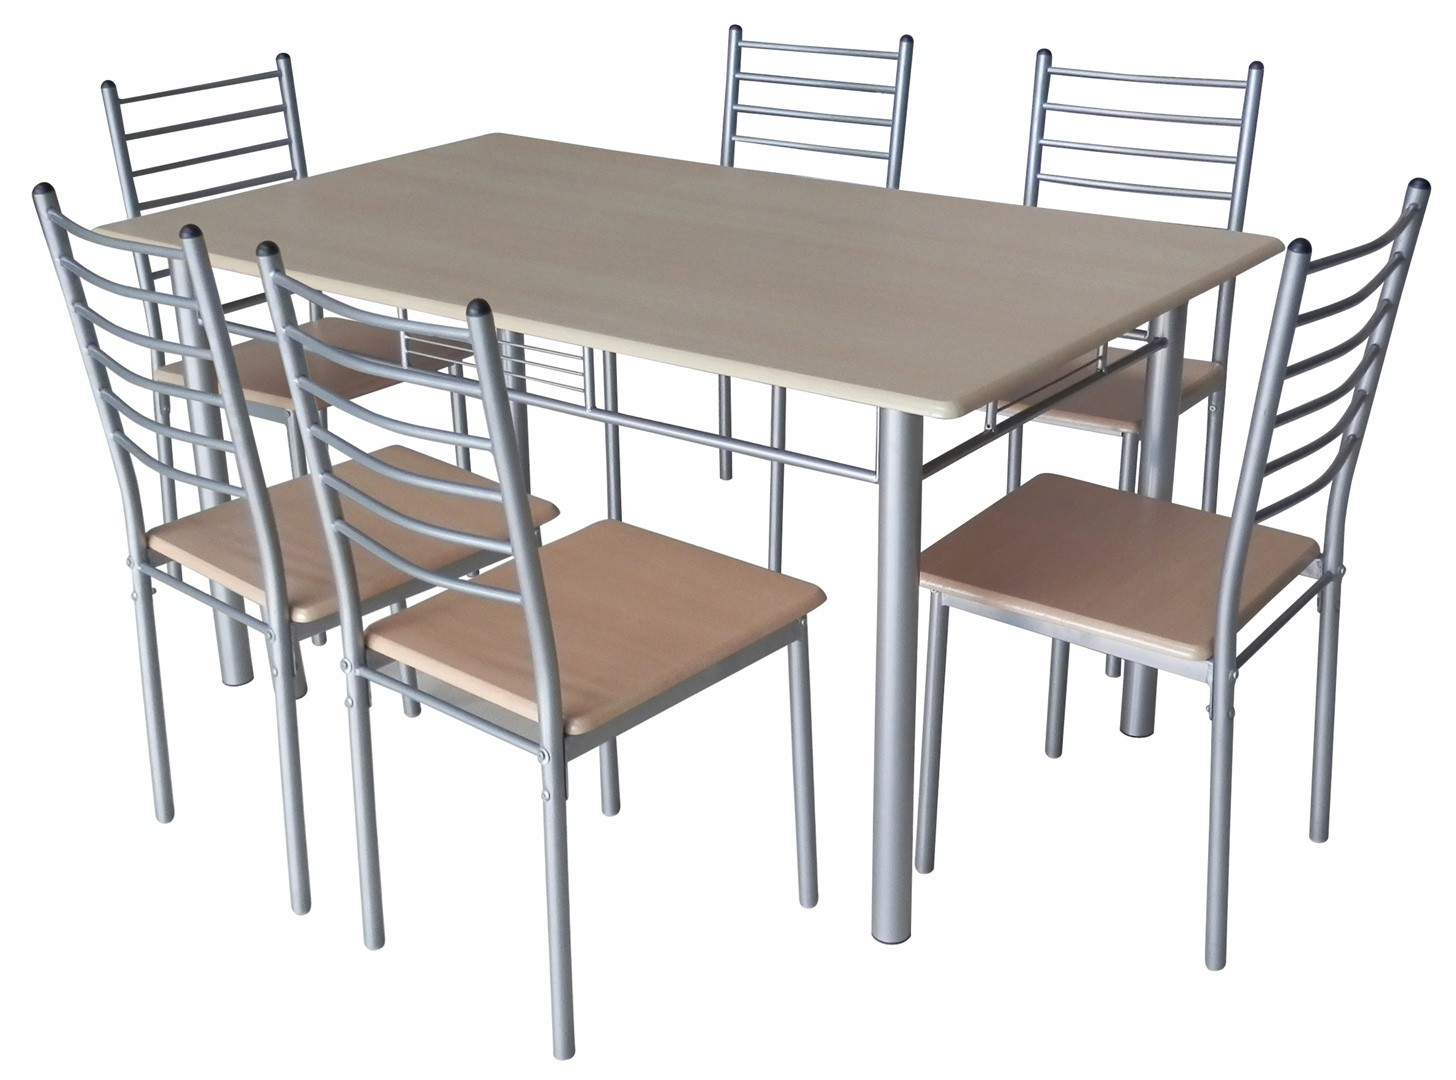 Ensemble table et chaises de cuisine but chaise id es for Ensemble chaise et table